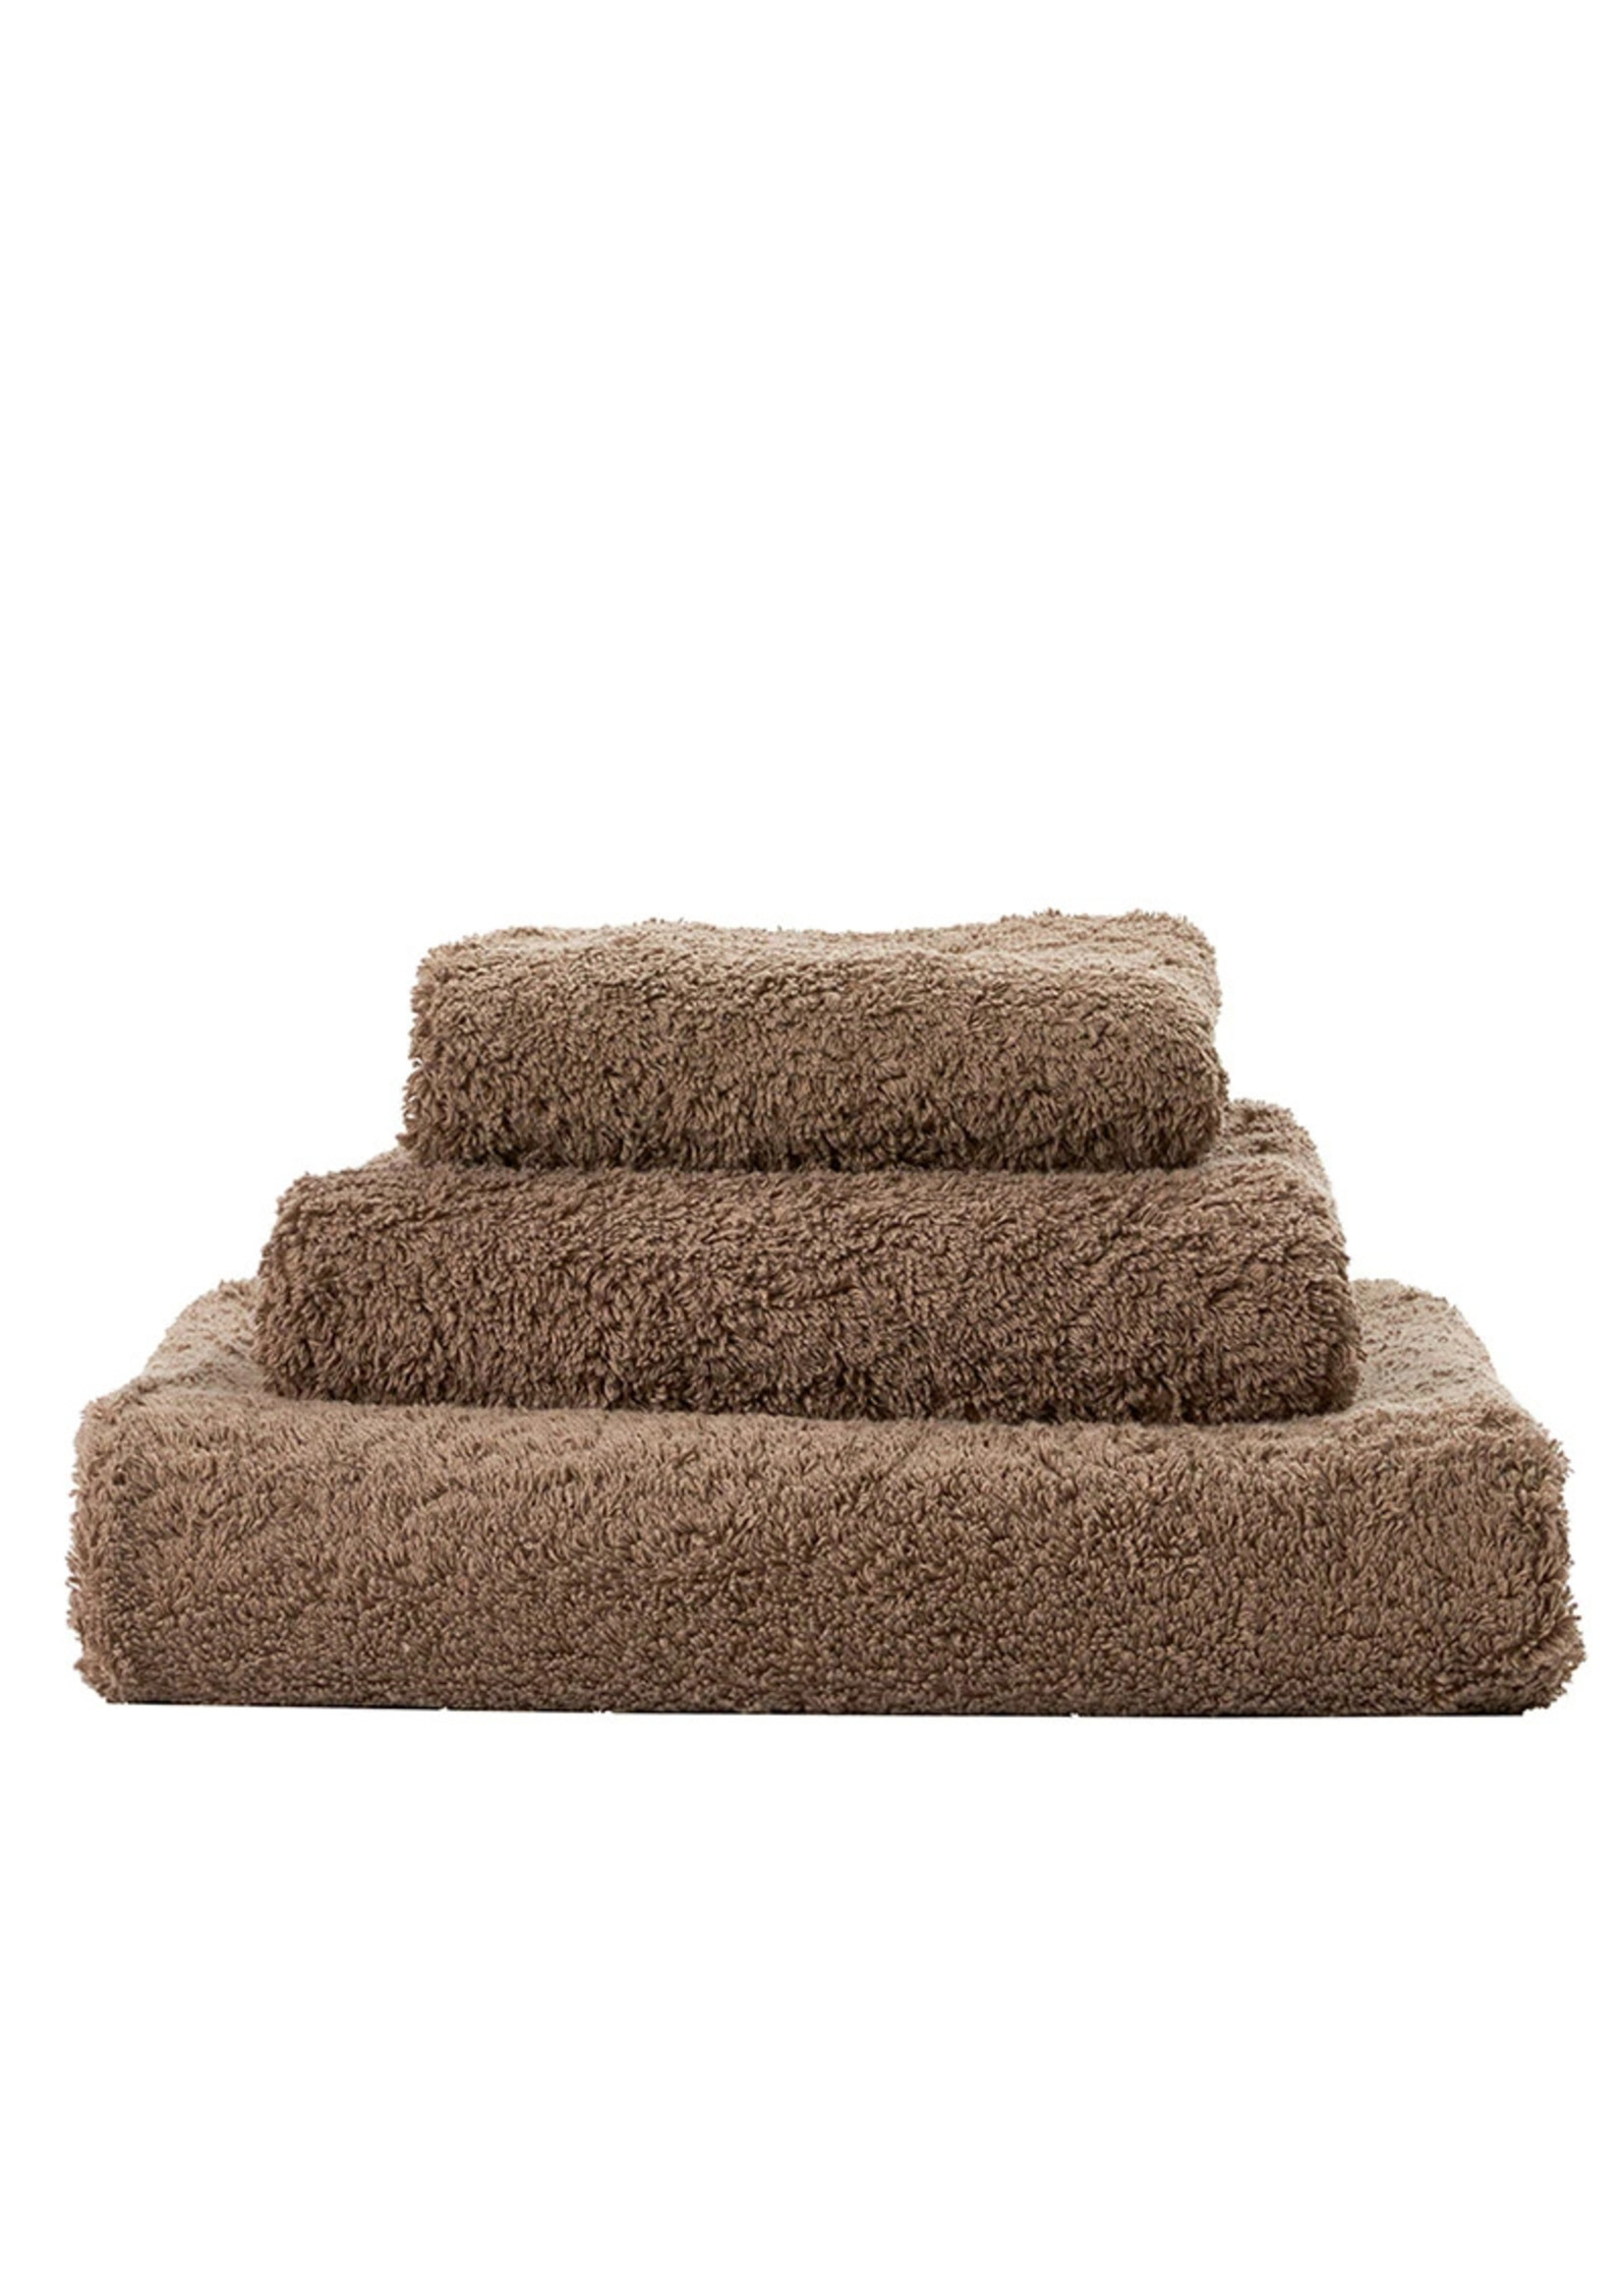 Abyss & Habidecor Super Pile Funghi Towels